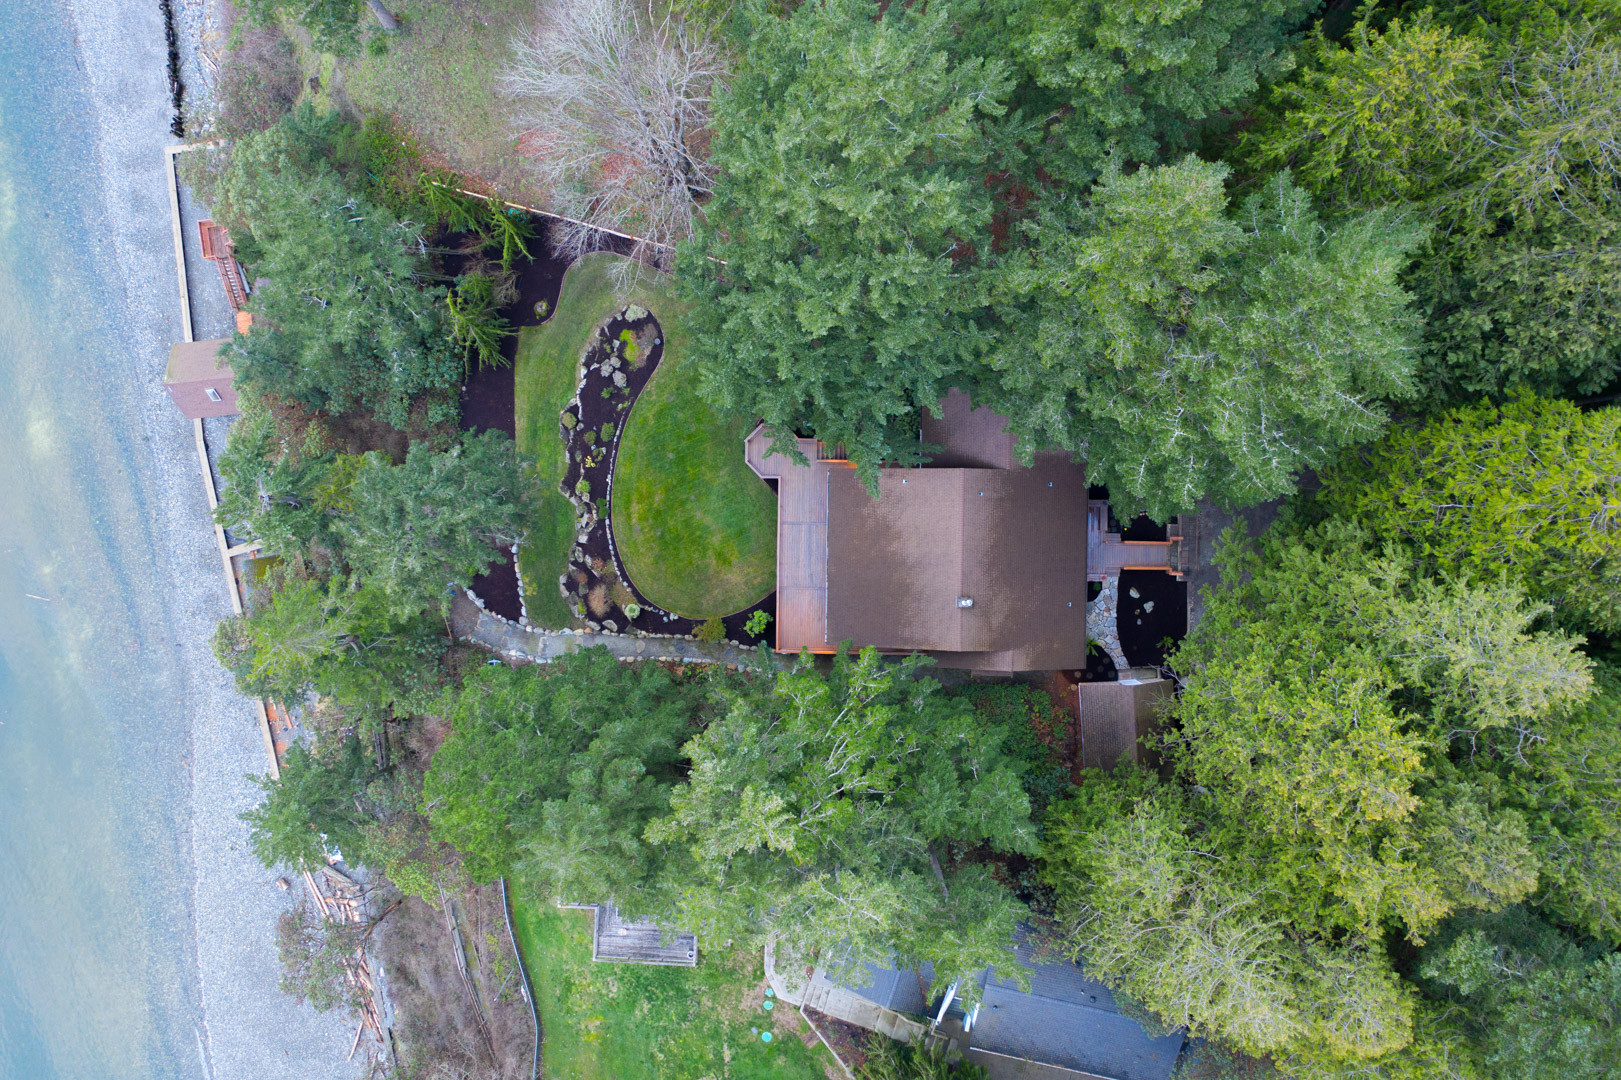 2442 S. Camano Drive - Exterior (with cl